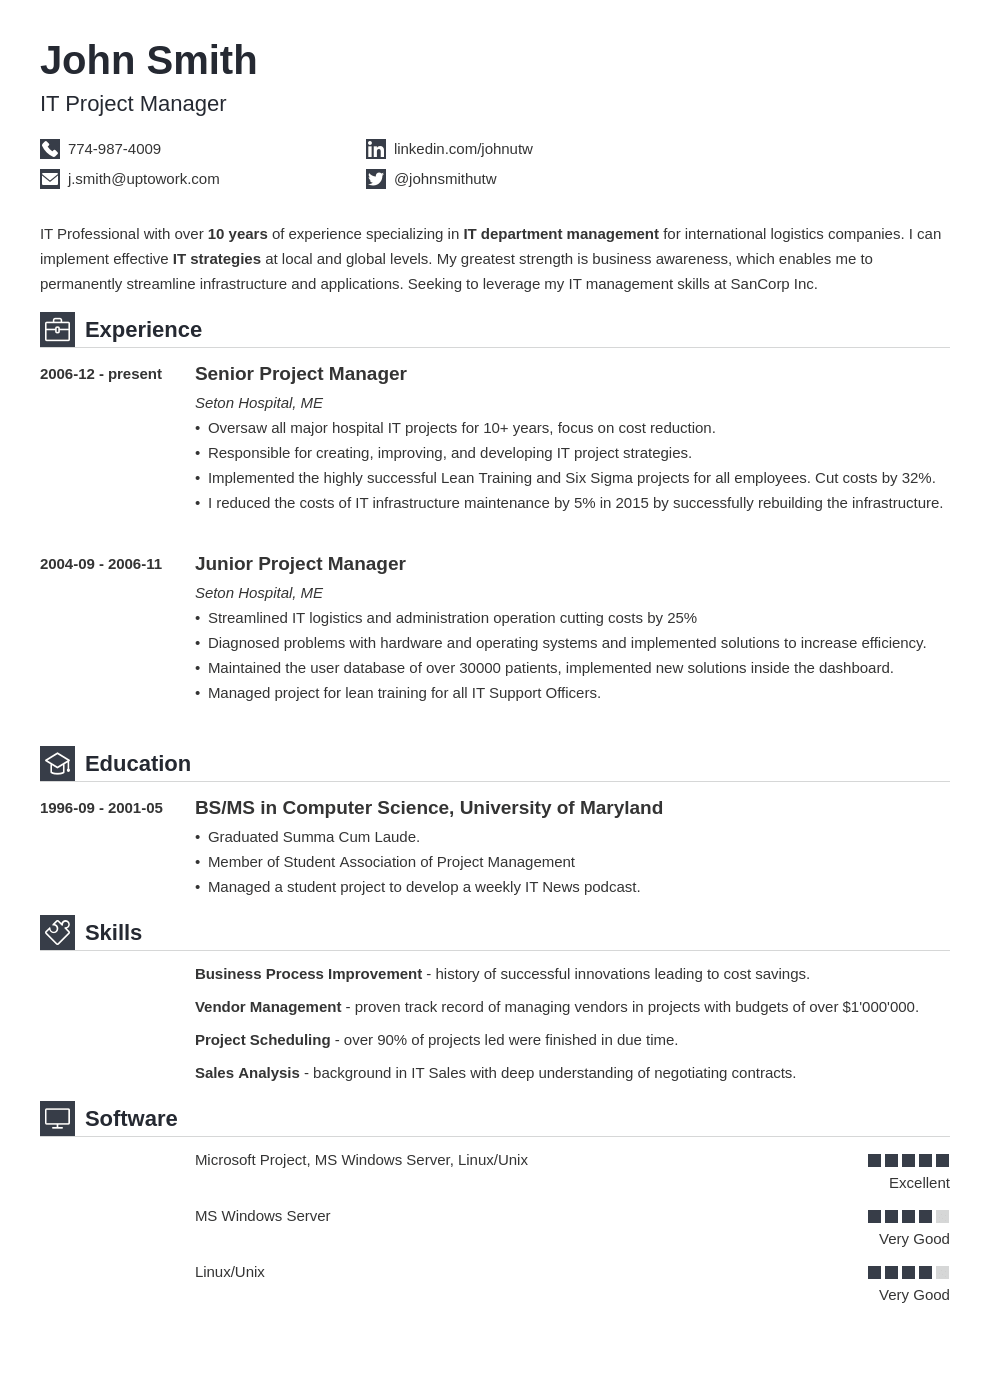 20+ CV Templates Create a Professional CV & Download in 5